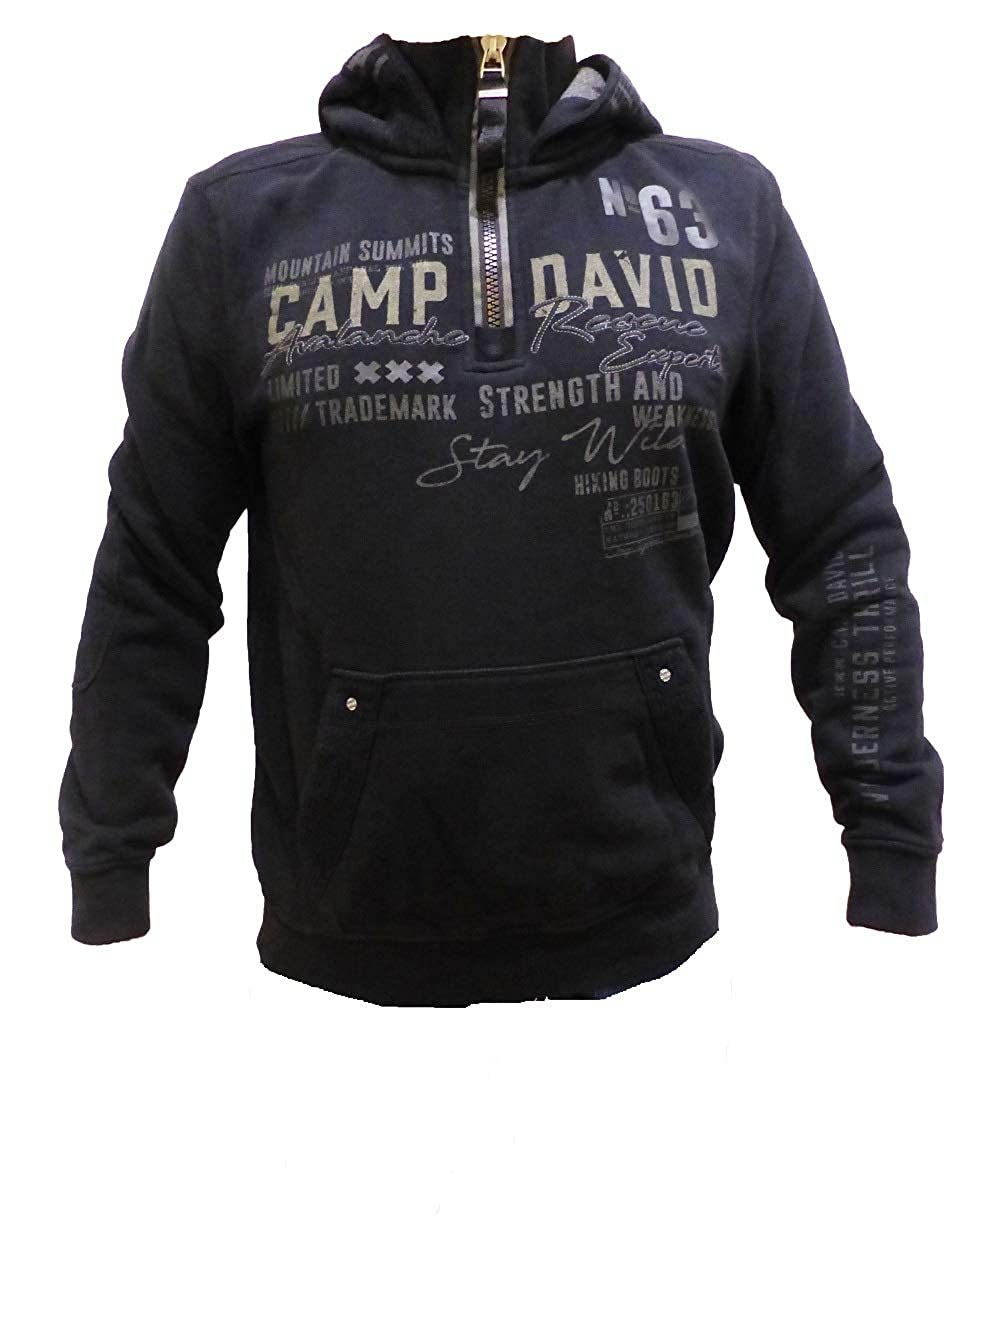 presenting another chance on feet images of Camp David Sweatshirt with Hood Alpine Lifeguard II Black CCG-1810-3824